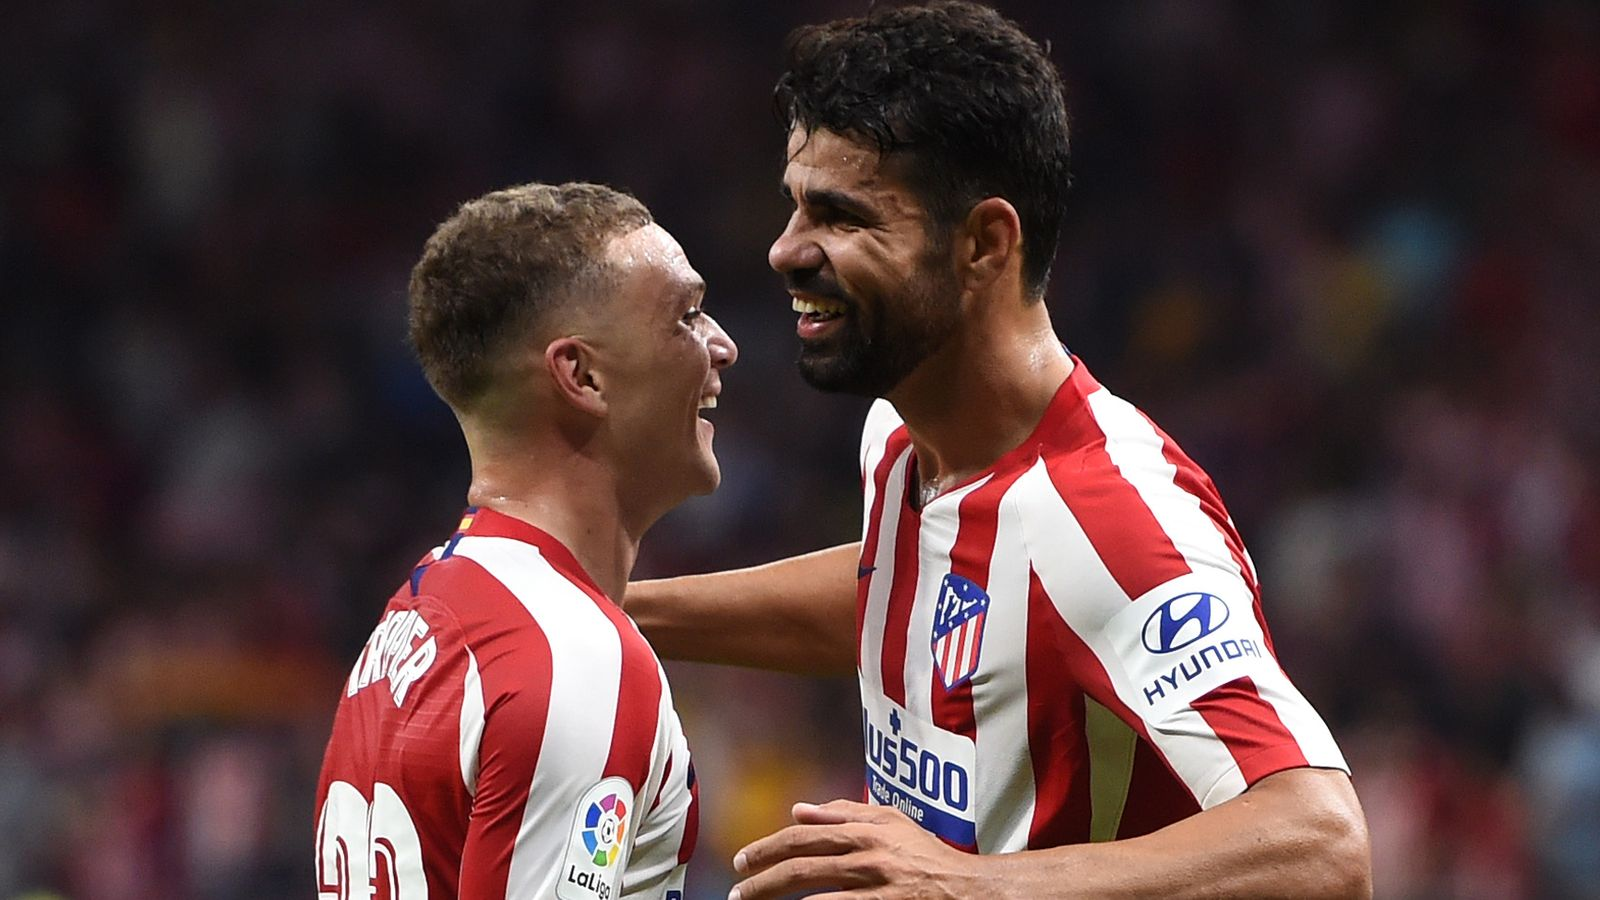 Atletico Madrid's Kieran Trippier says Diego Costa is the 'funniest player' he's played with